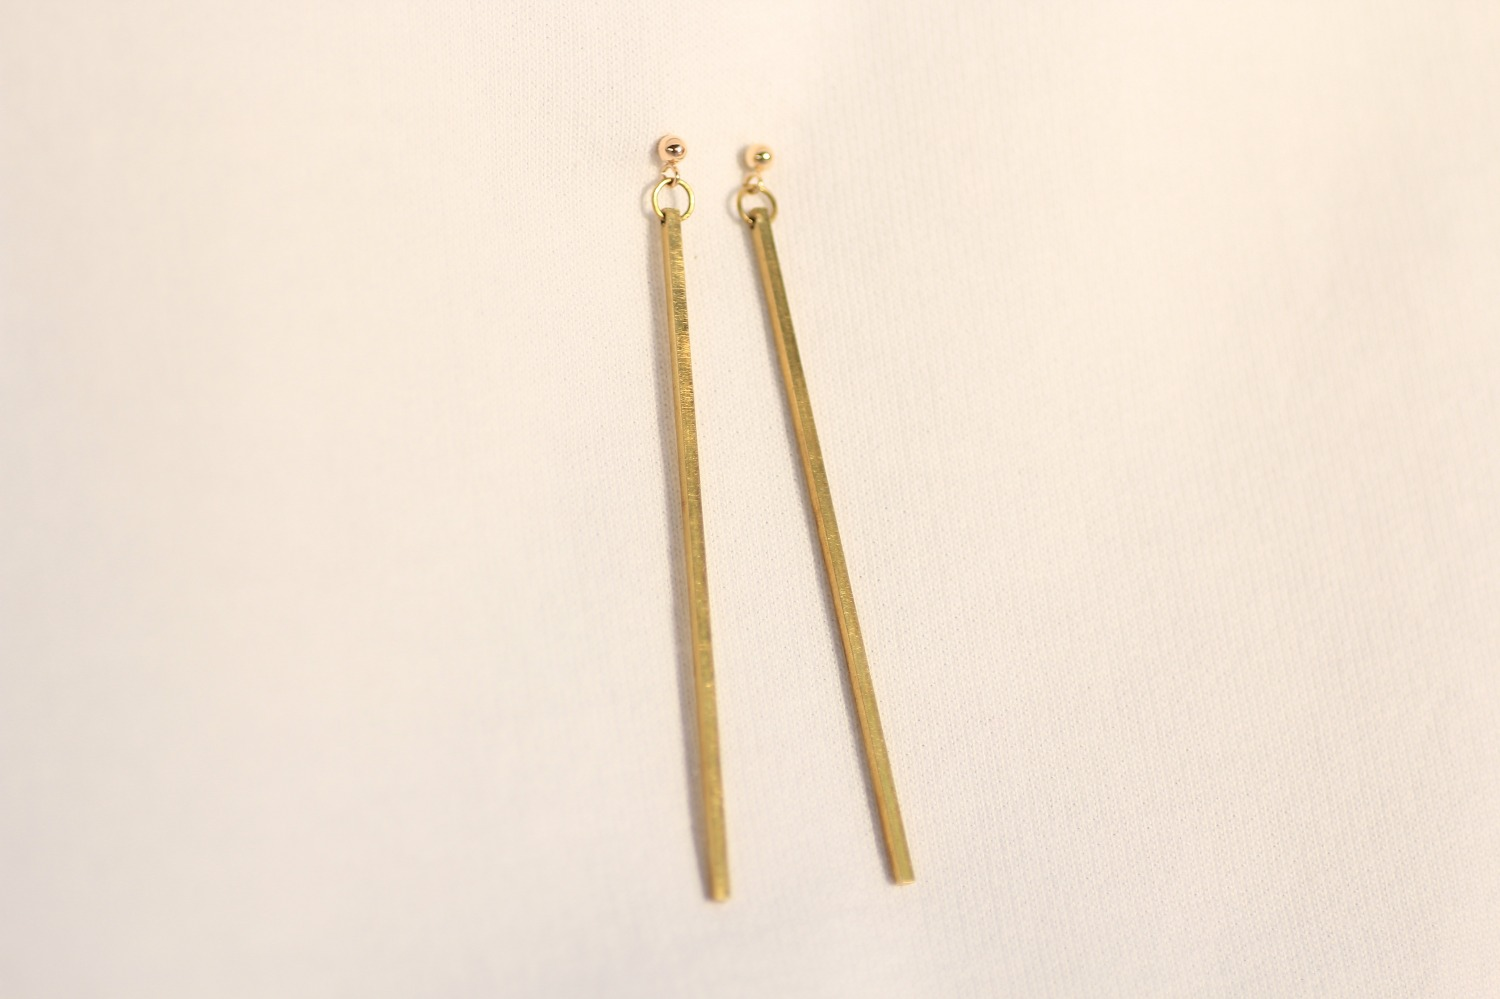 il earrings silver market etsy minimal rod bar sterling stud